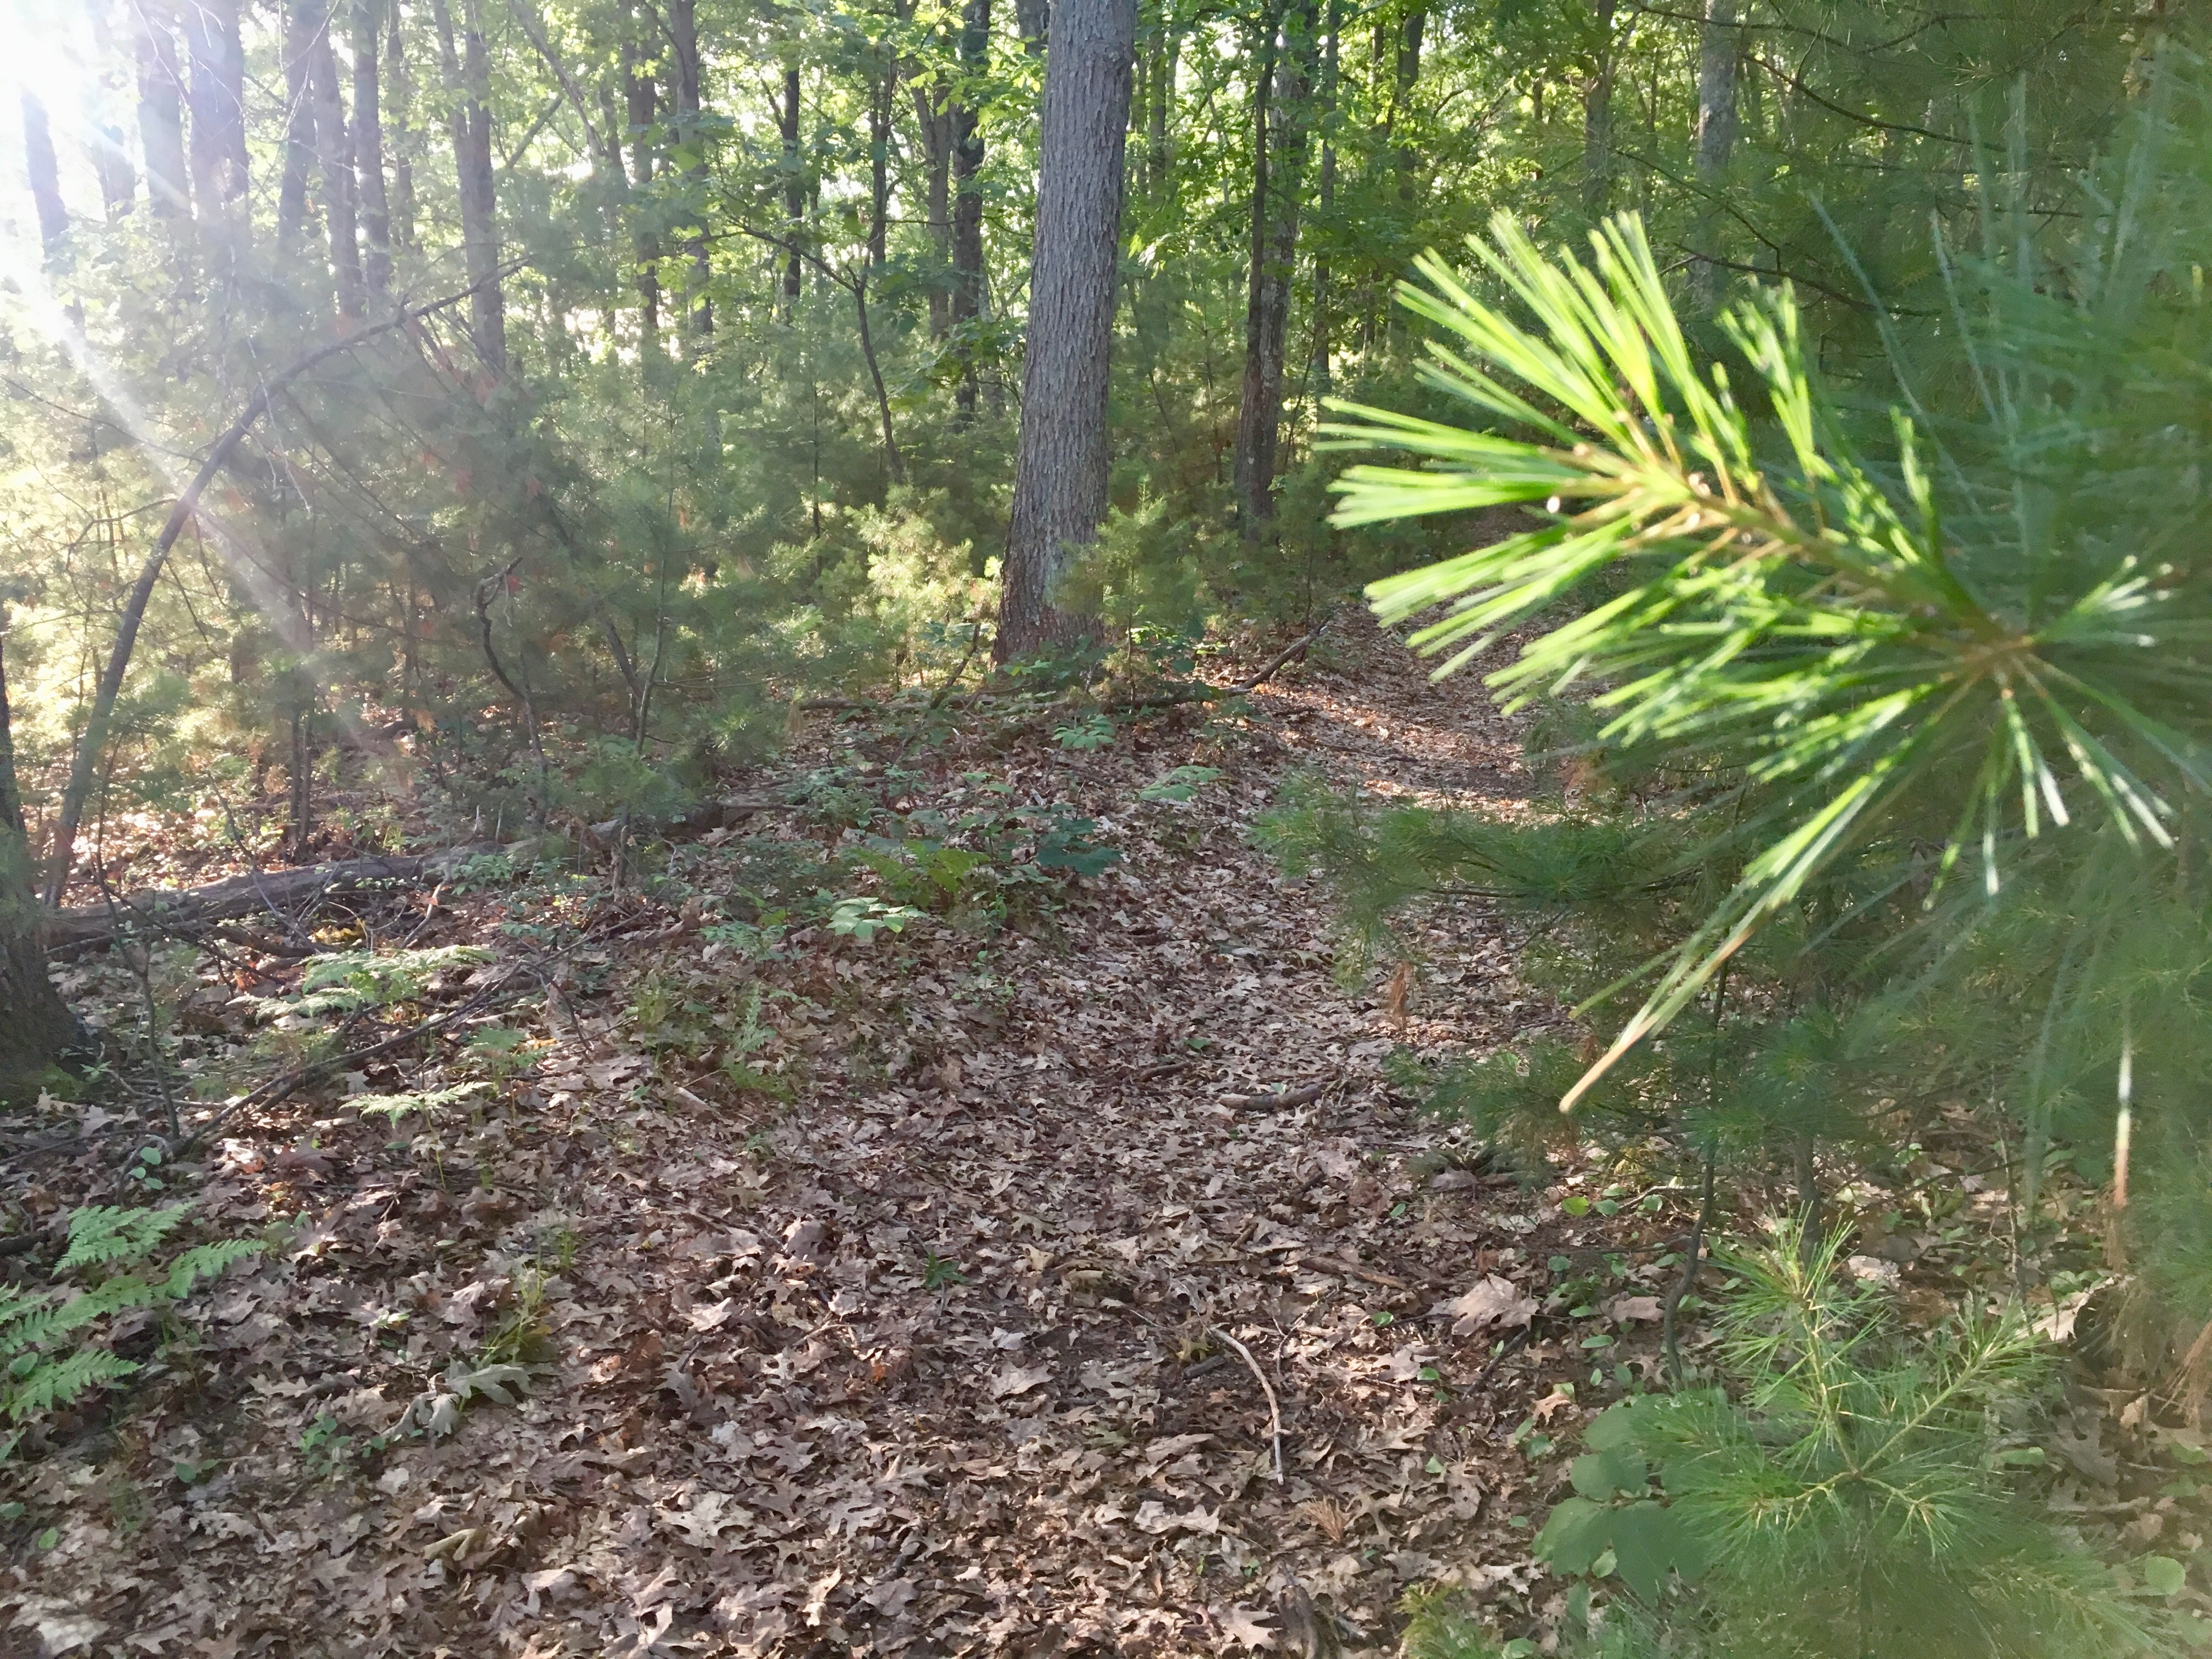 Listening to the leaves and pine needles under your feet can help calm your mind as you walk through the woods.